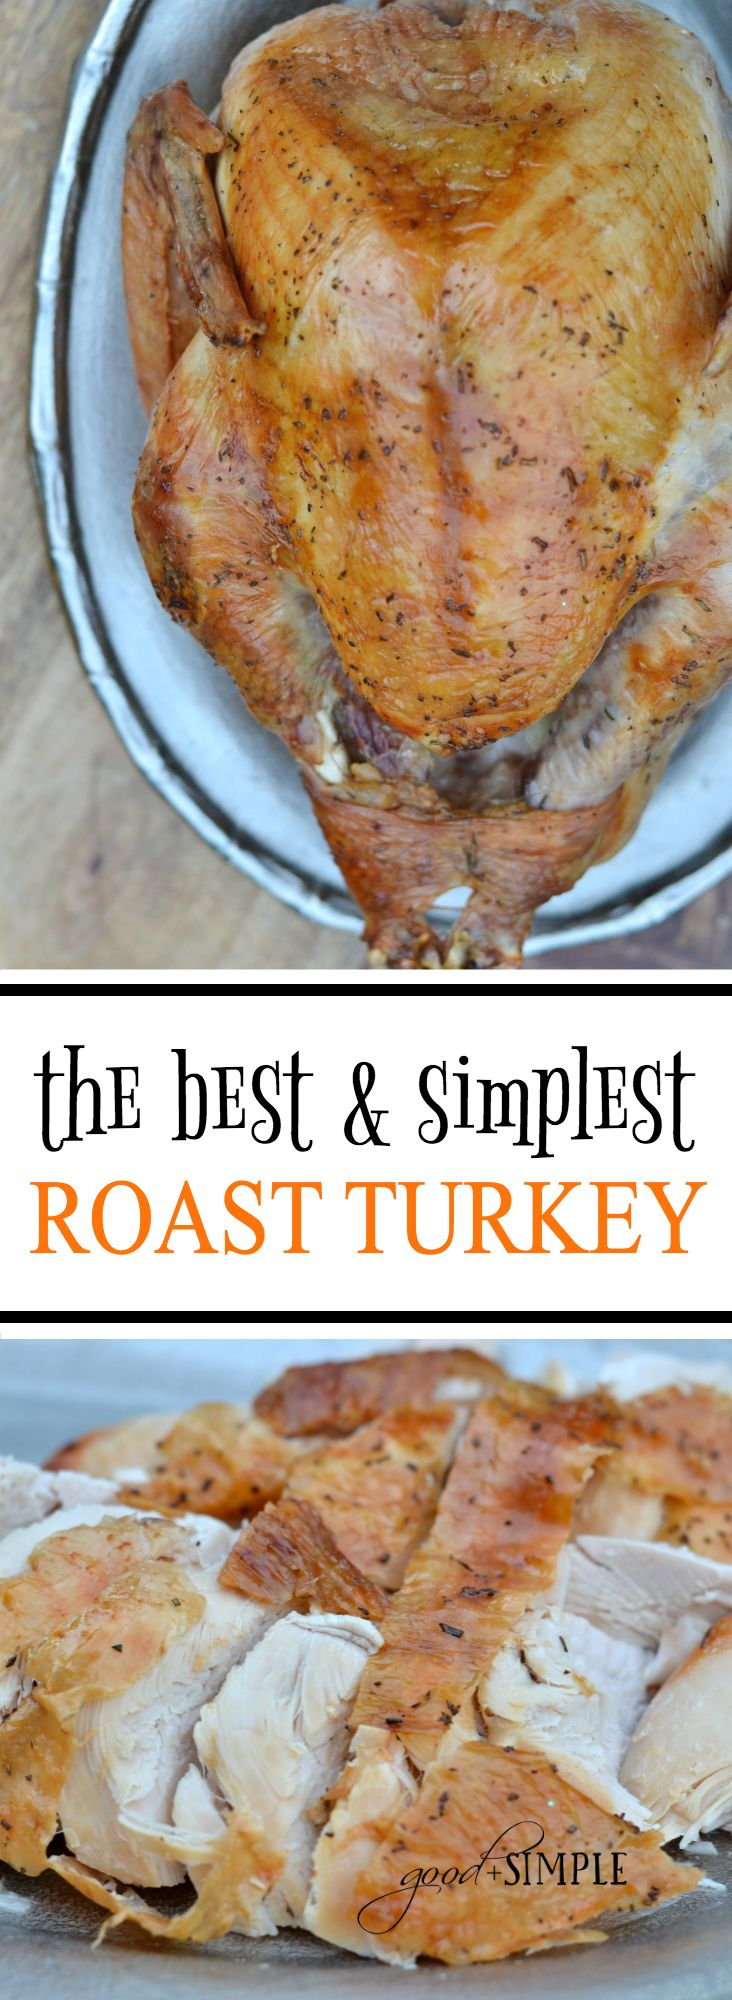 This easy dry-brining technique for making roast turkey requires nothing more than kosher salt, and it will result in the most flavorful, moist turkey you'll ever make!